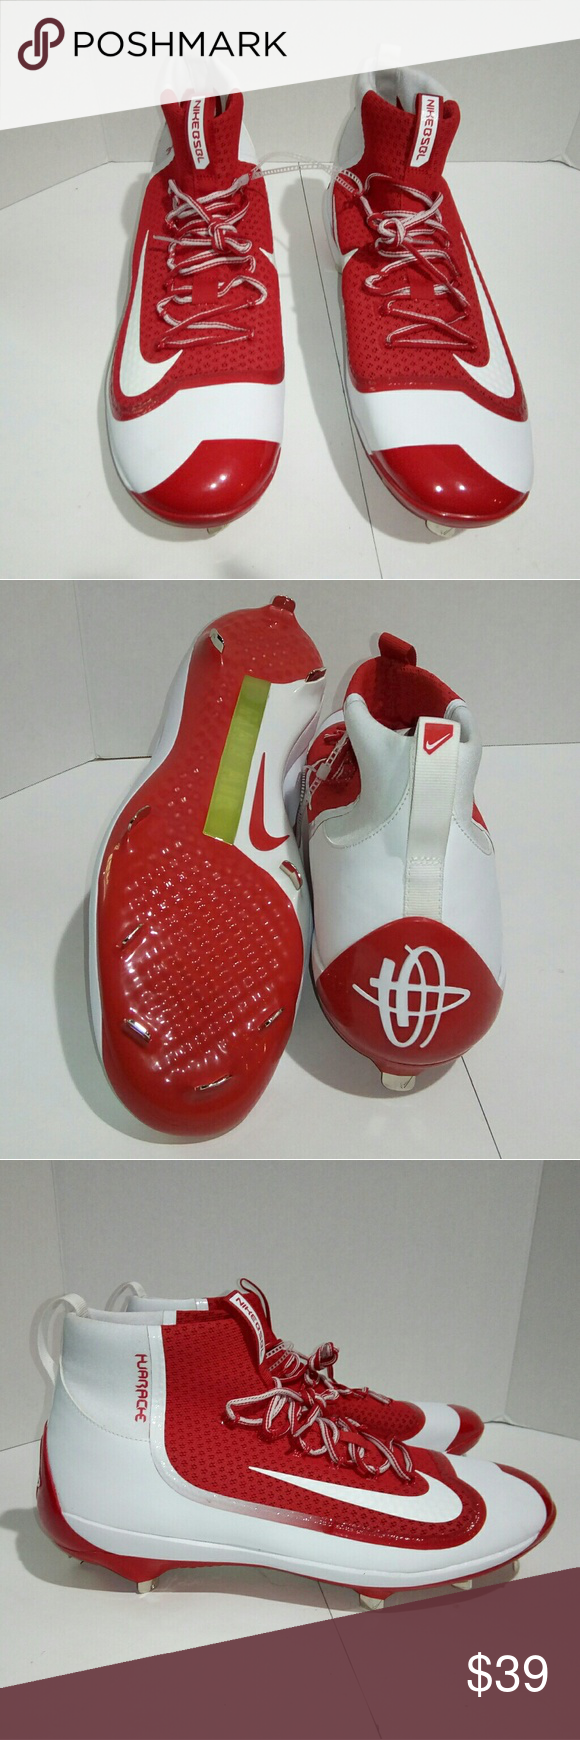 sports shoes c0d13 fb417 N Men s Nike Max Air Huarache 16 Baseball Cleats NEW Men s Nike Max Air  Huarache Sz 16 Baseball ⚾ BSBL White Red Cleats Shoes These shoes are in ...